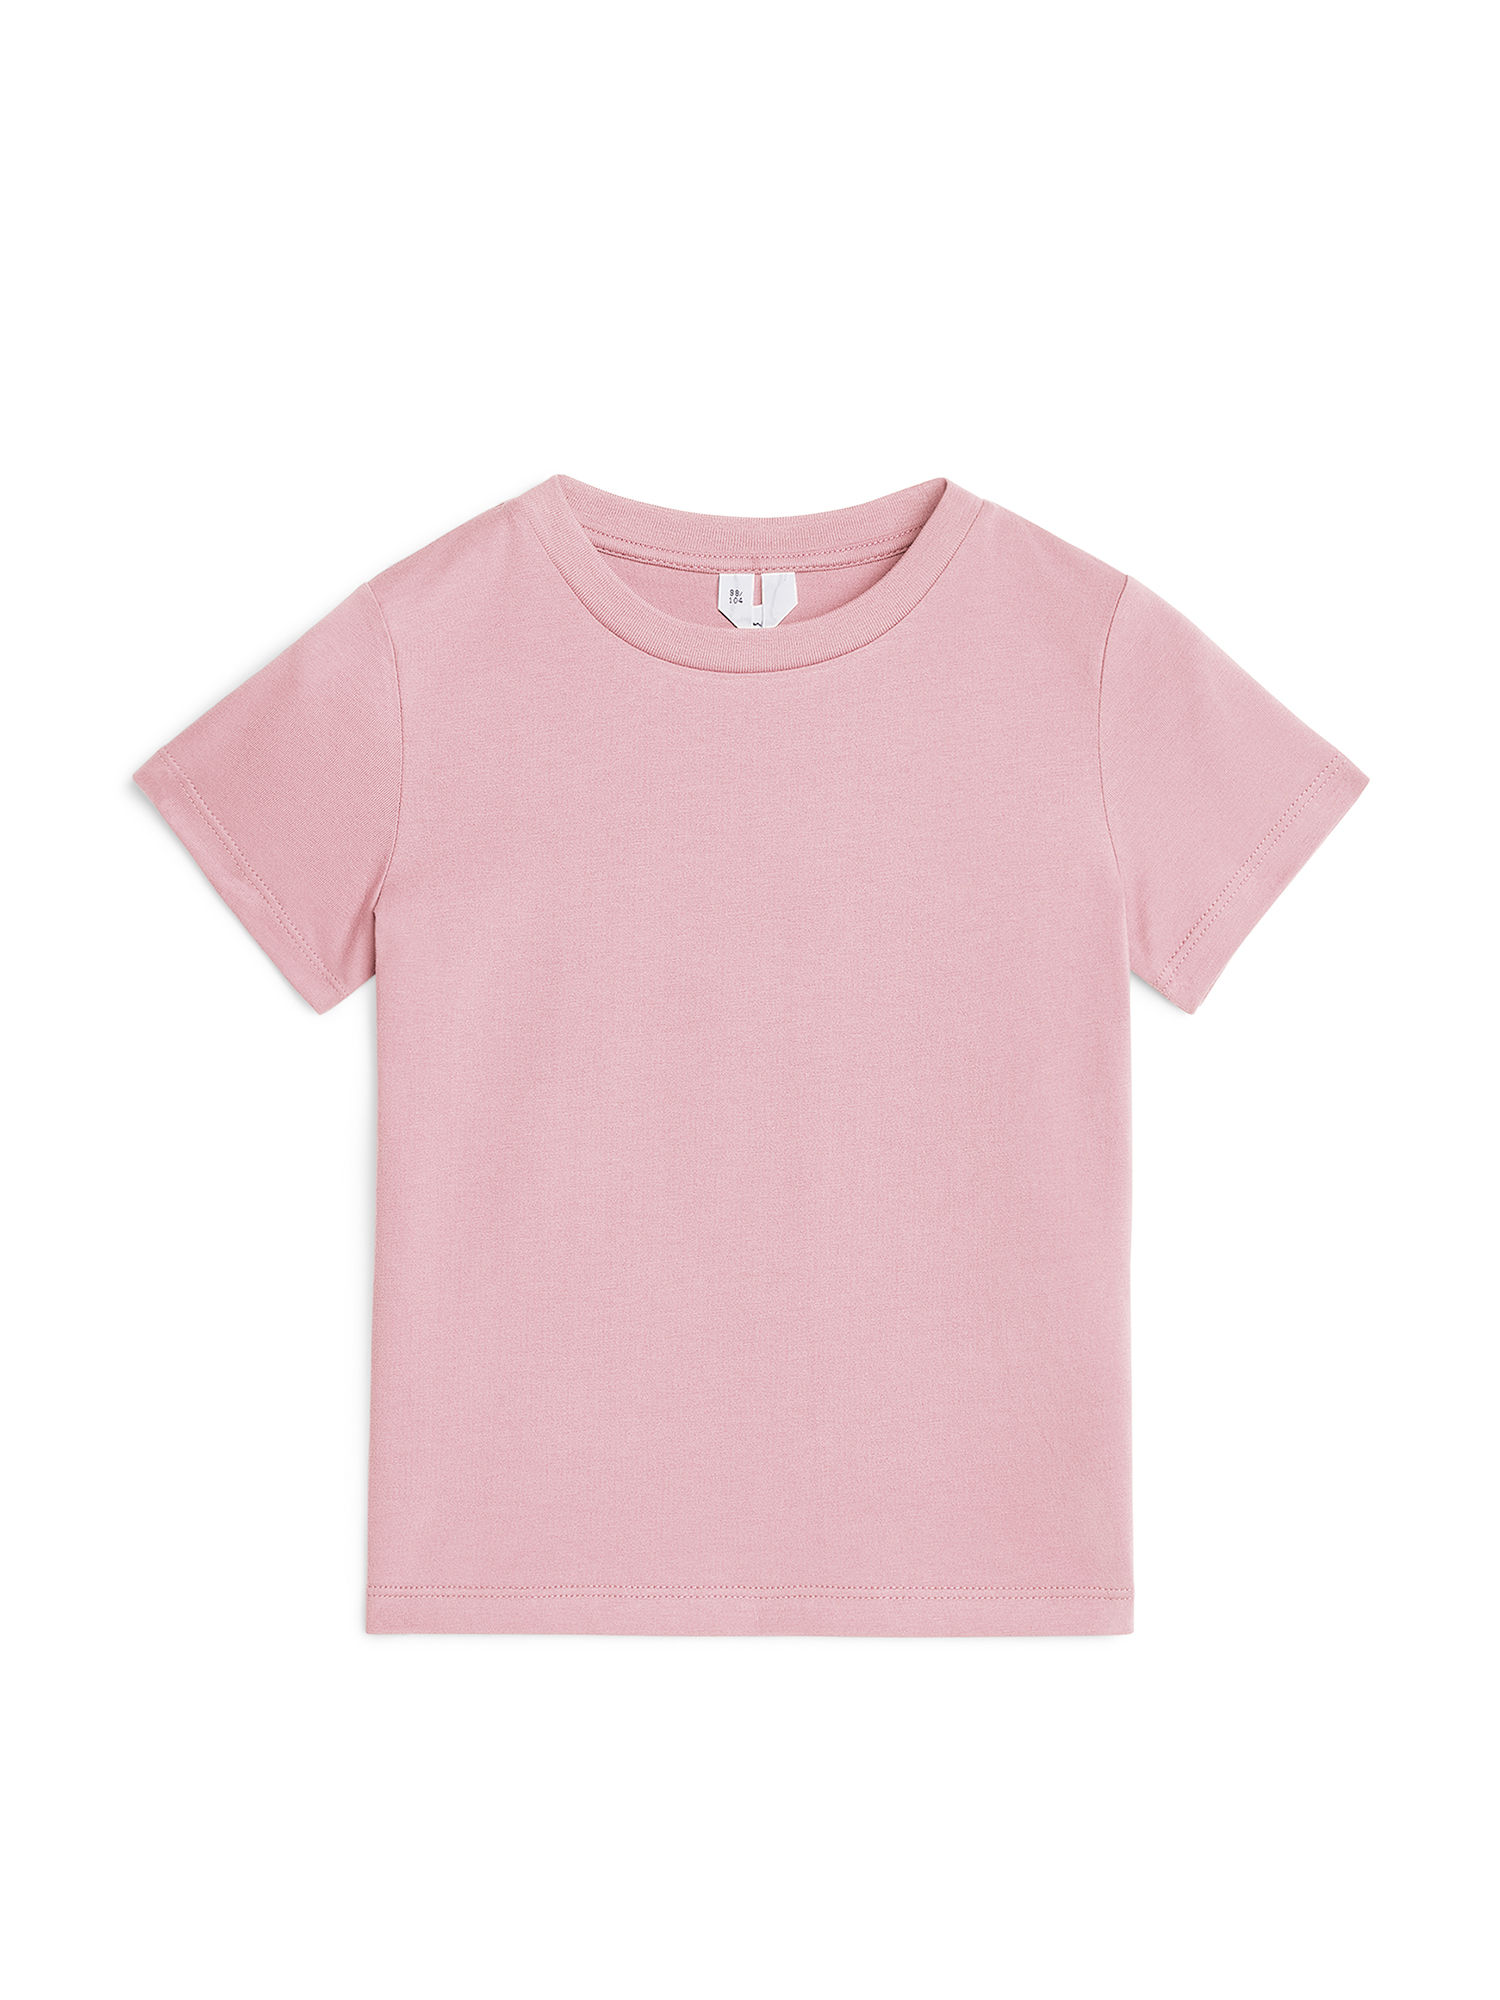 Fabric Swatch image of Arket organic cotton crew-neck t-shirt in pink